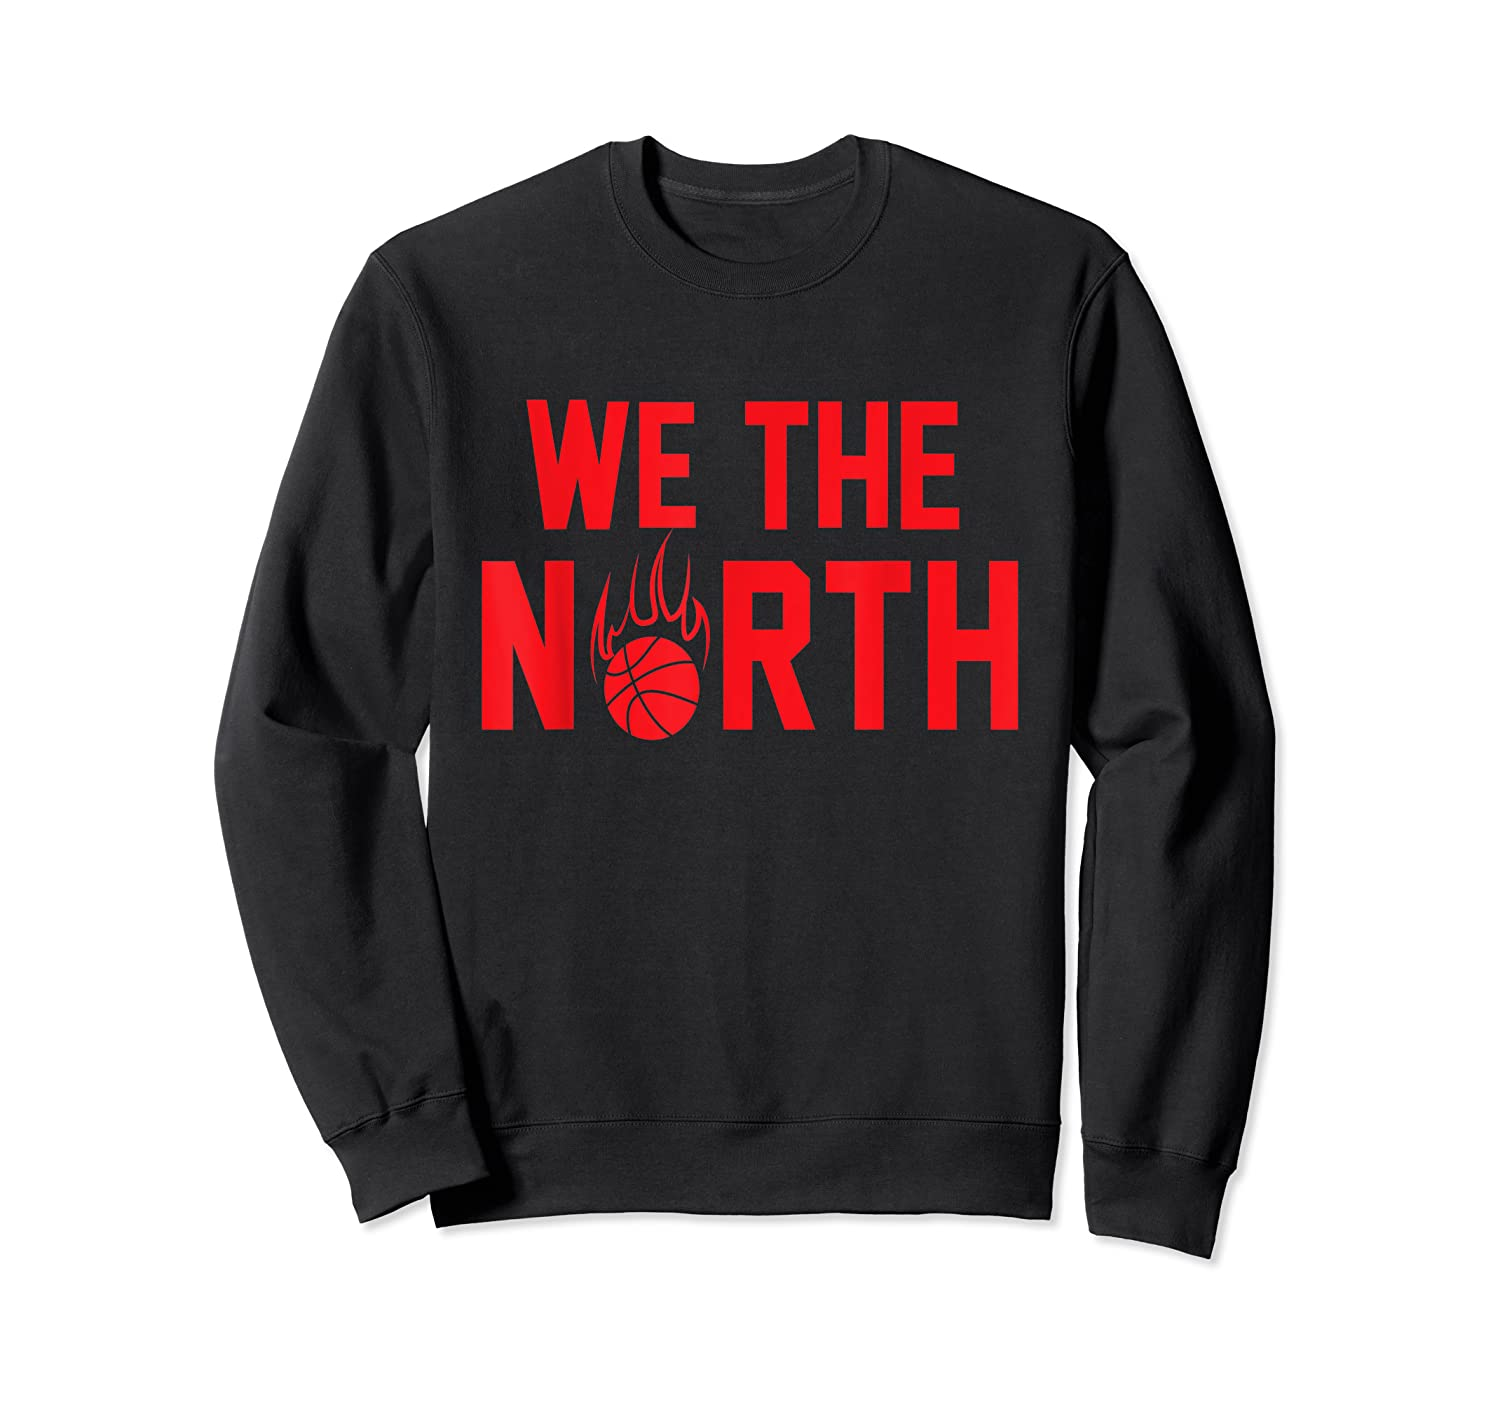 Toronto's We The Other North Basketball Gift Canada Shirts Crewneck Sweater